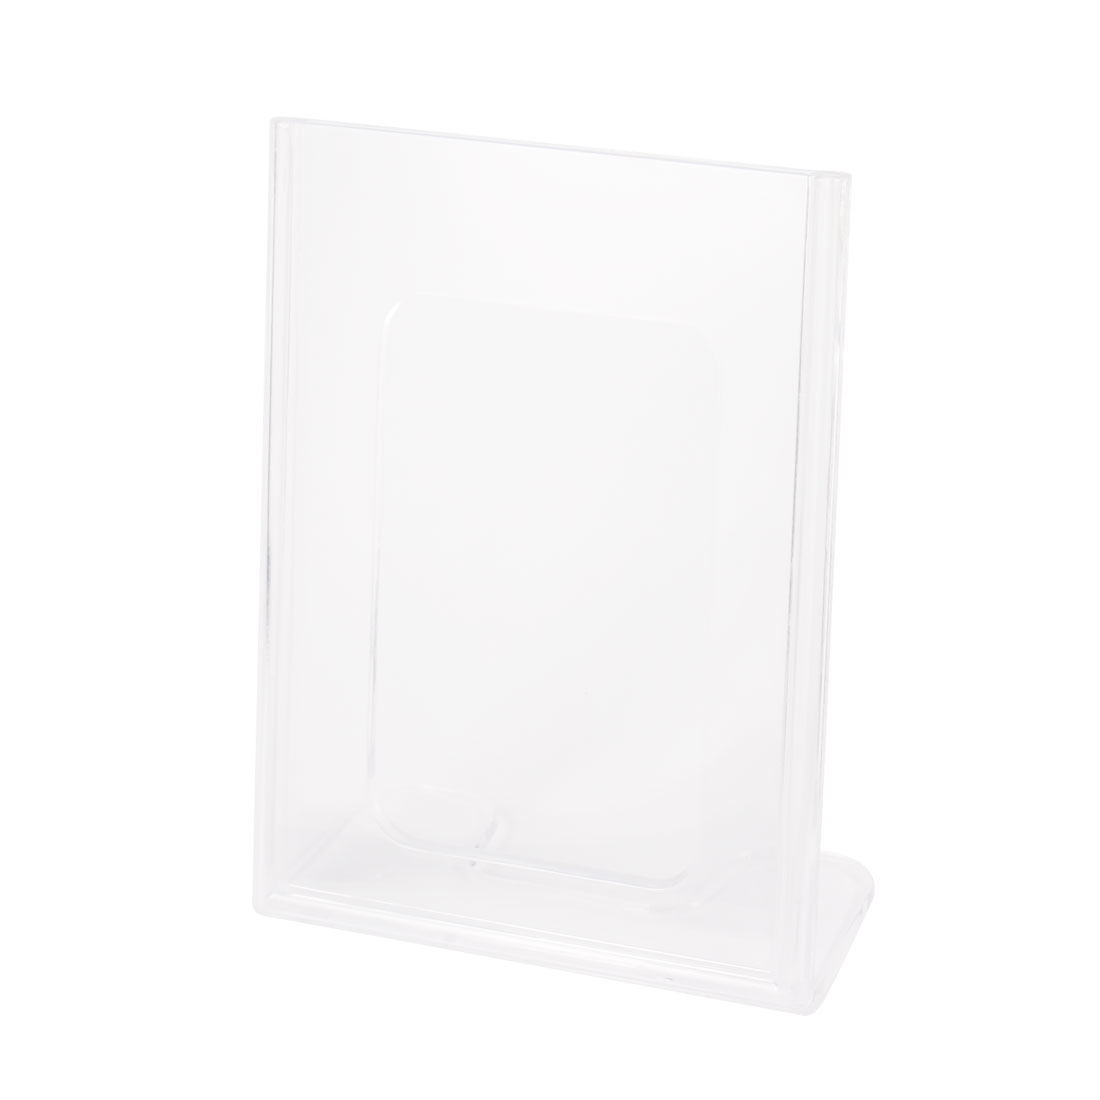 "5"" x 3.5"" Plastic Vertical Table Sign Card Display Clip Holder Clear"